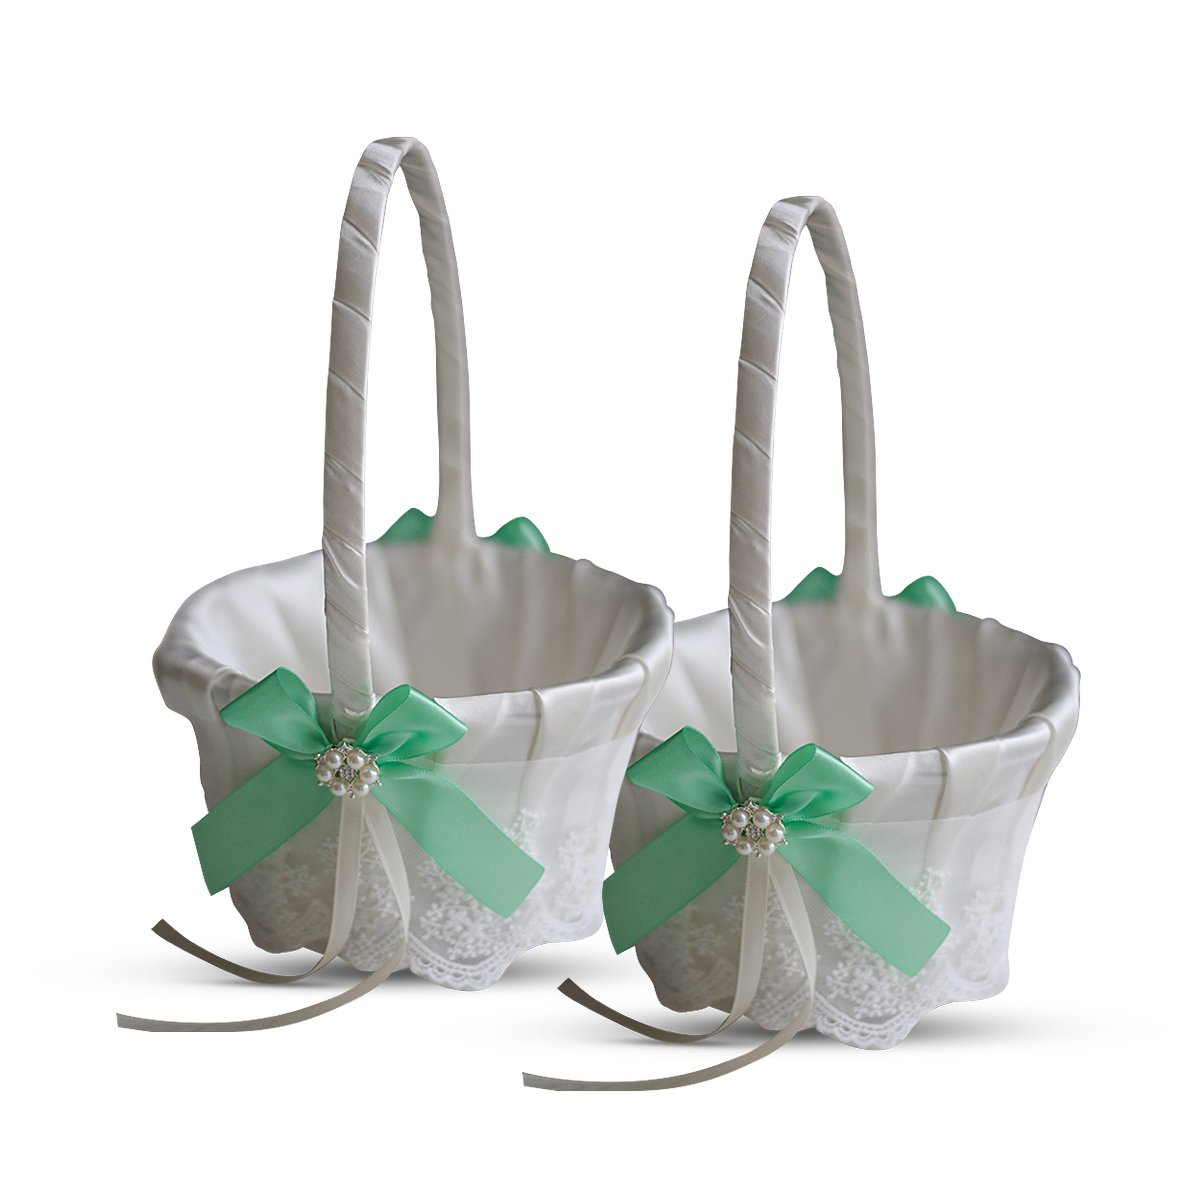 Alex Emotions Ivory Ring Bearer Pillow and Basket Set | Lace Collection | Flower Girl & Welcome Basket for Guest | Handmade Wedding Baskets & Pillows (Apple Green)